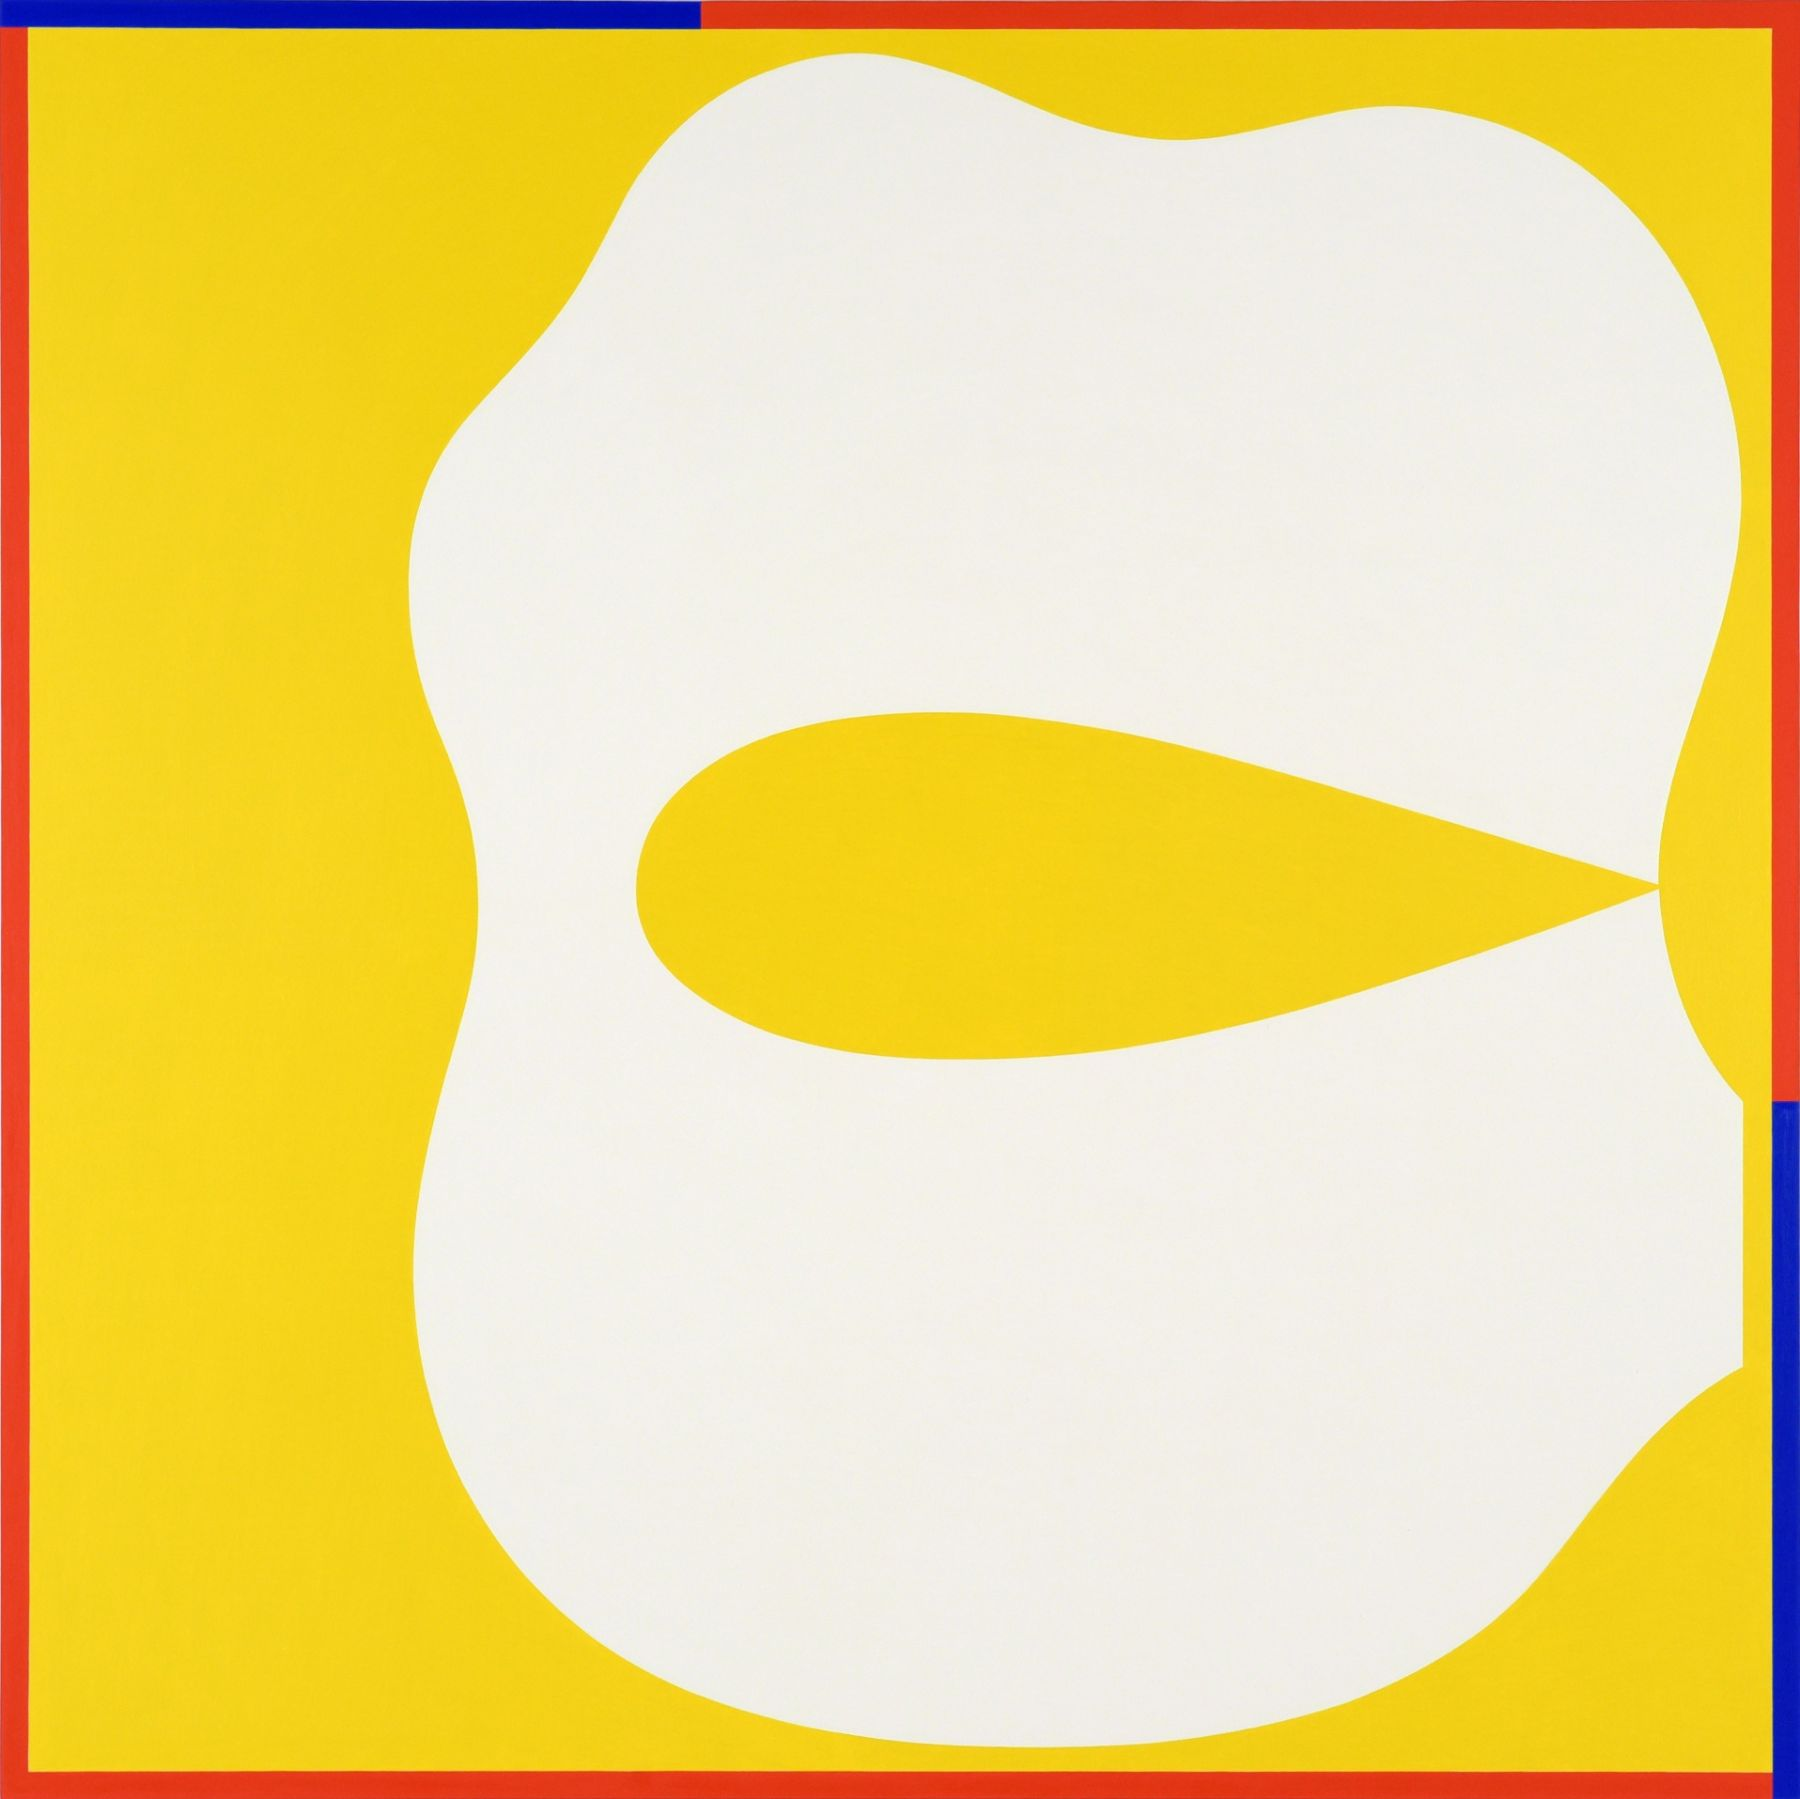 Cary Smith, Shape #3 (yellow with red-blue border), 2017